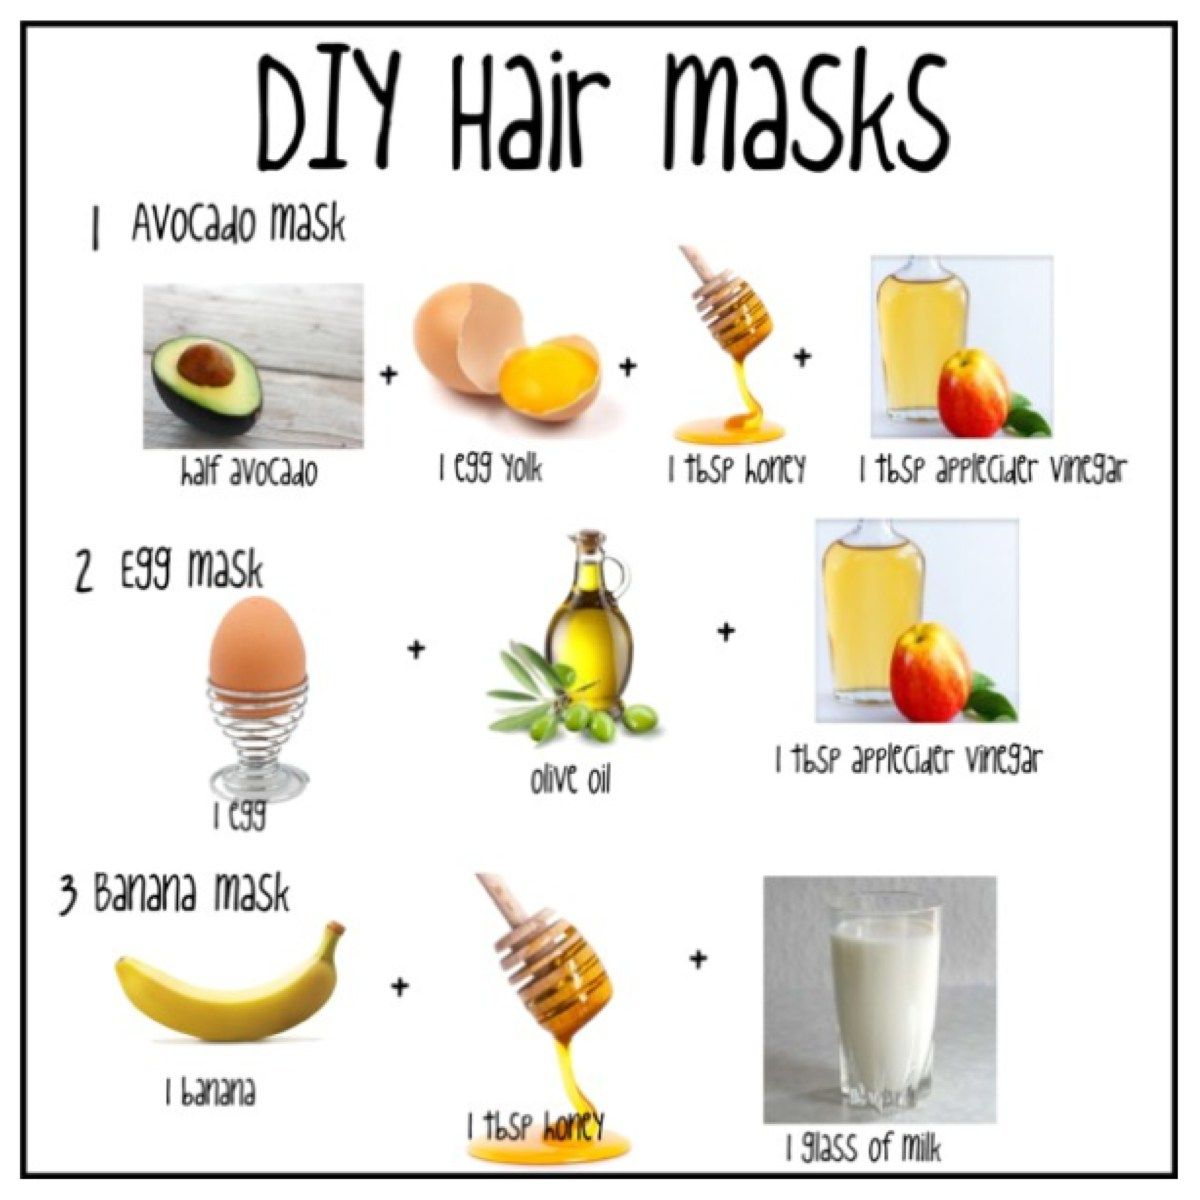 DIY Hair Masks Hair mask for damaged hair, Hair mask for